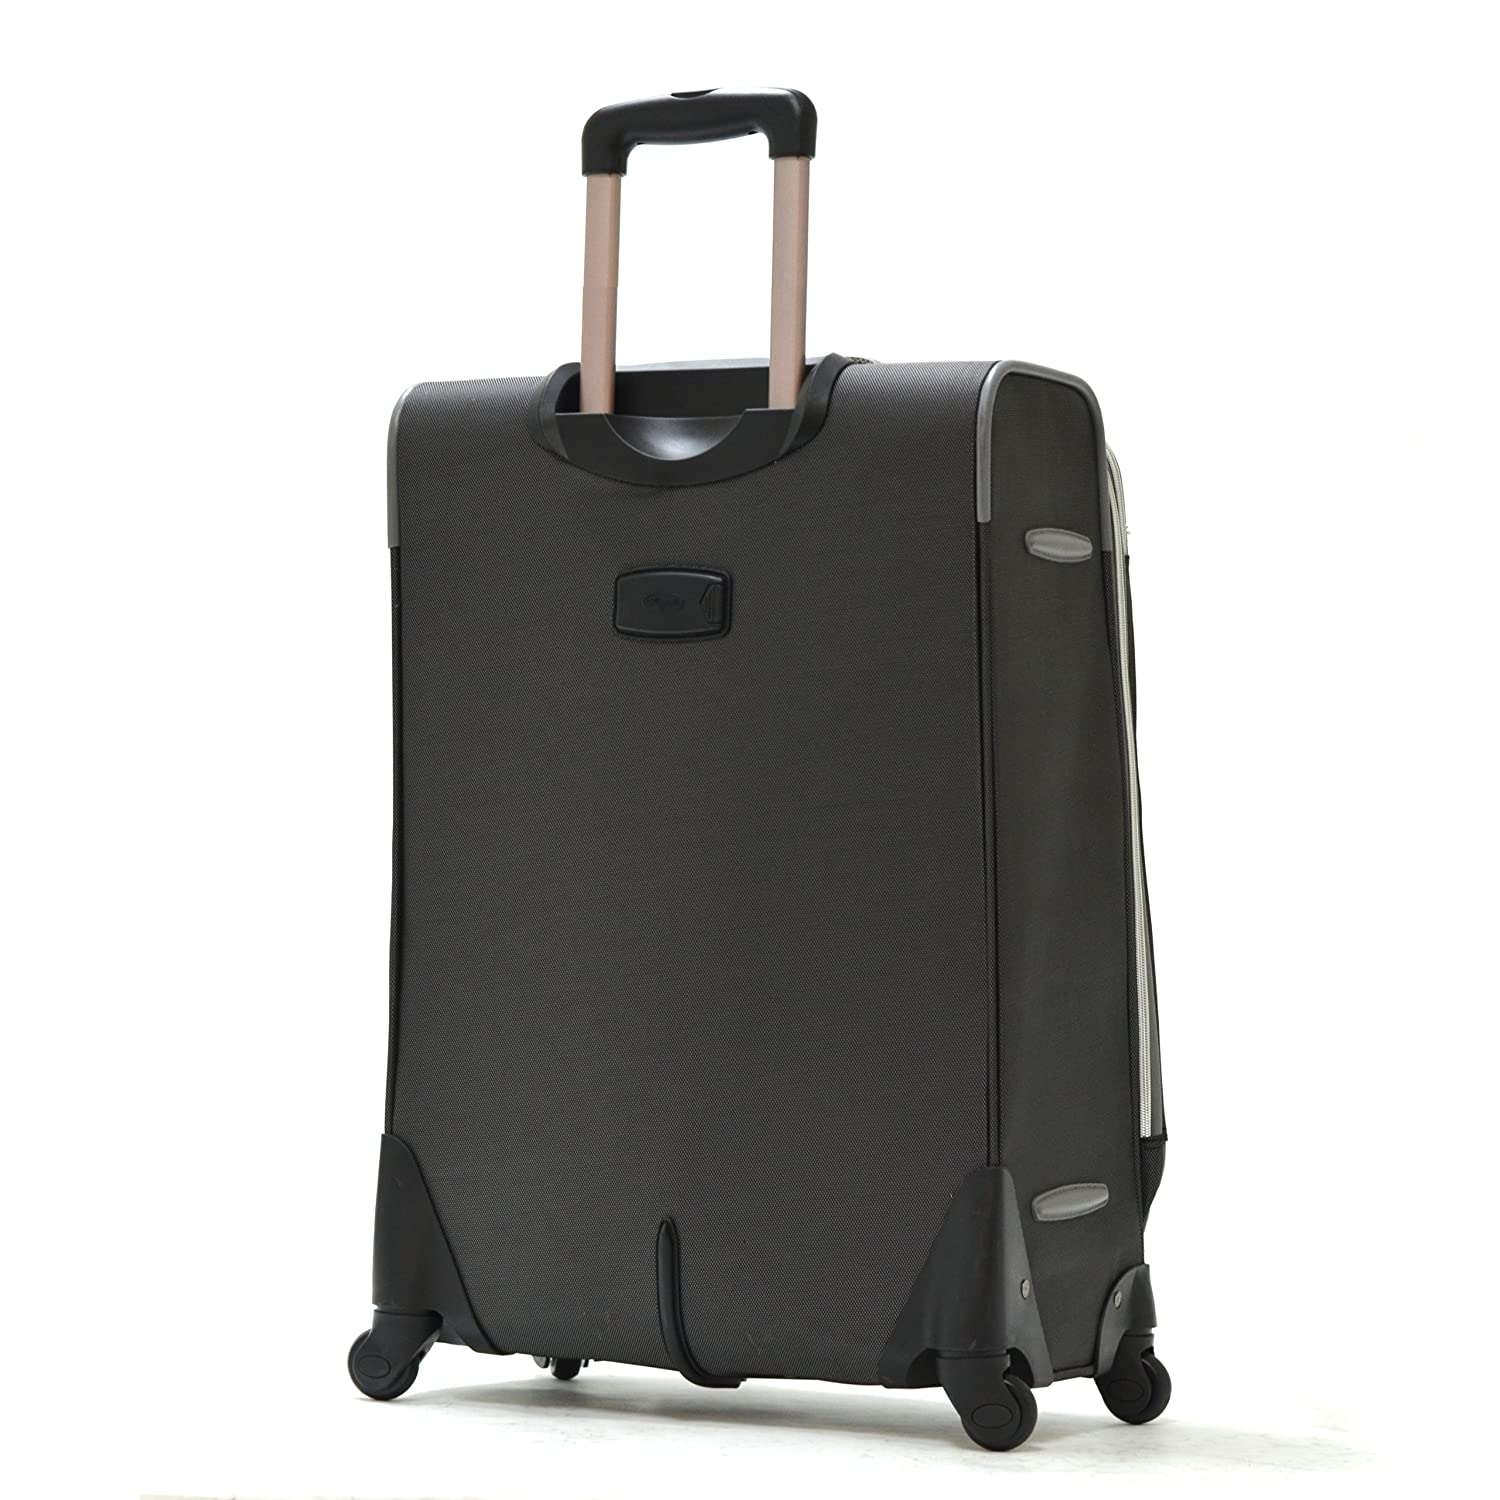 american airline carry on luggage size